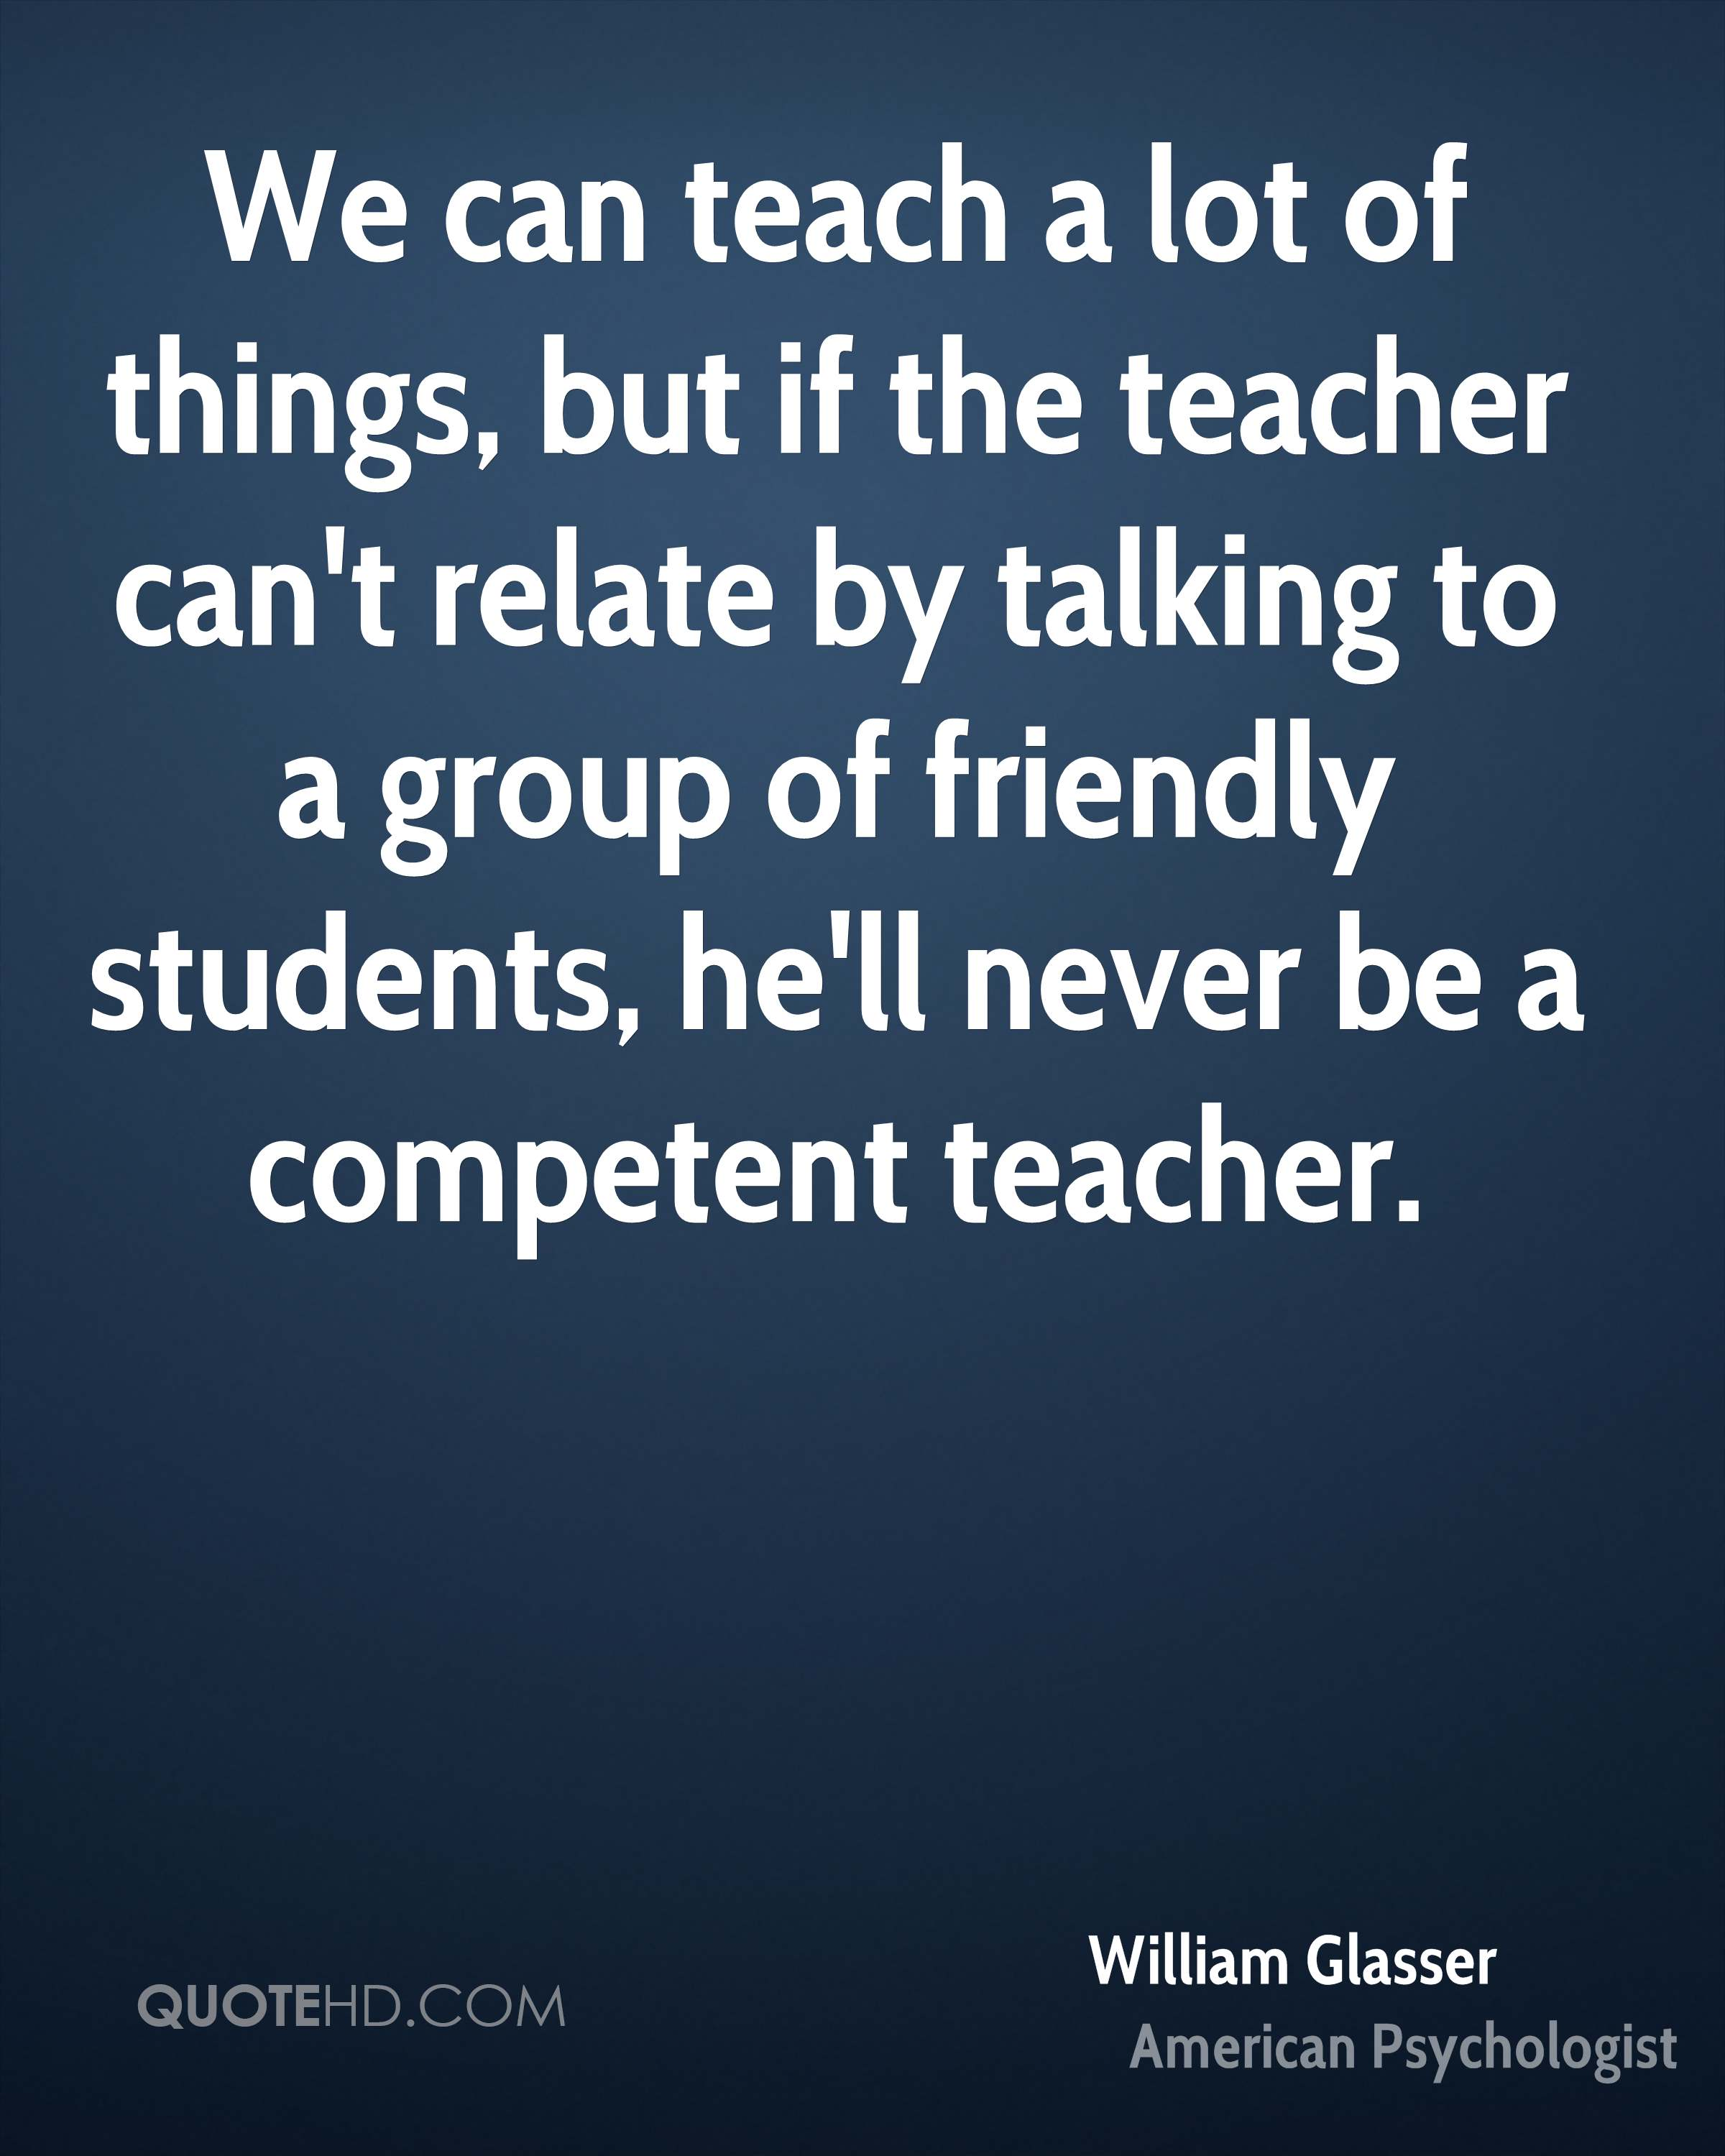 We can teach a lot of things, but if the teacher can't relate by talking to a group of friendly students, he'll never be a competent teacher.